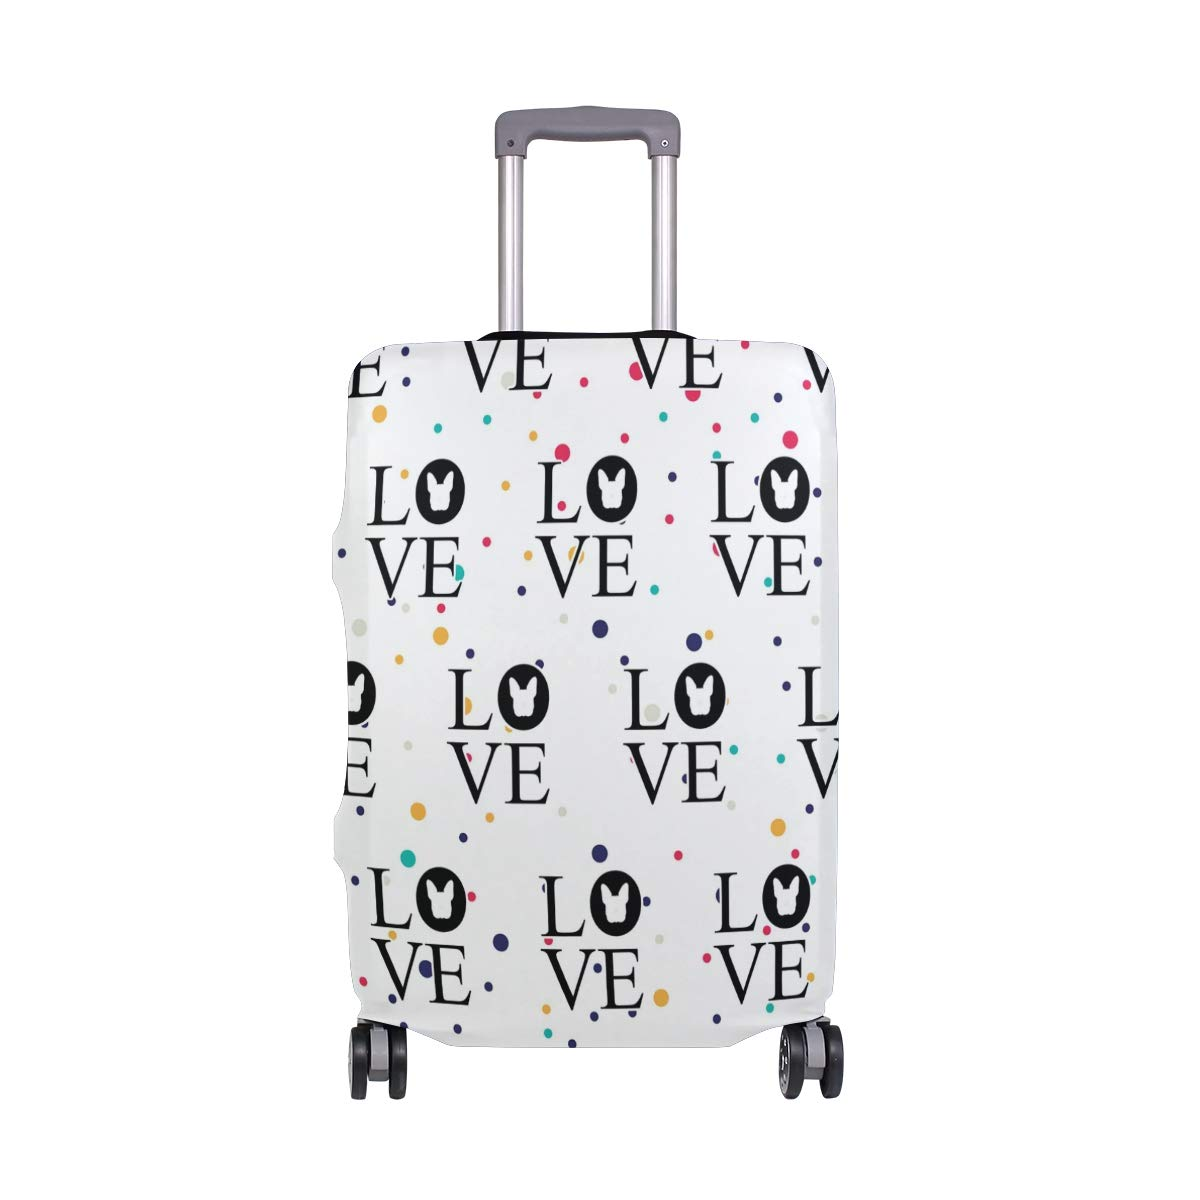 Bulldog Love Travel Luggage Cover - Suitcase Protector HLive Spandex Dust Proof Covers with Zipper, Fits 18-32 inch